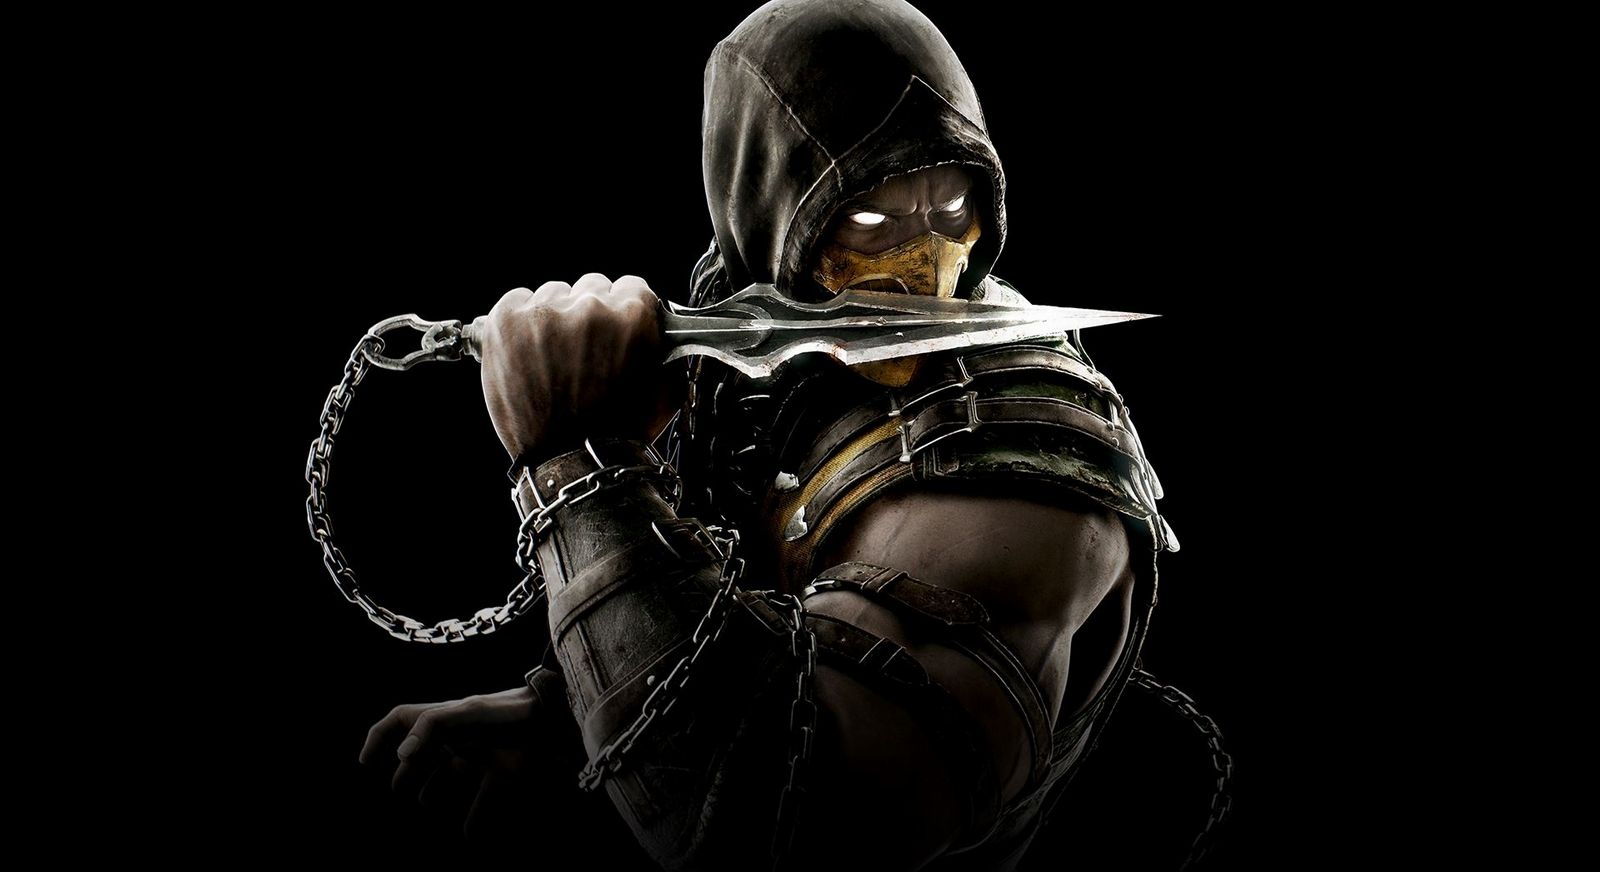 30 Mortal Kombat Wallpaper For Your Mobile Device 1600x872